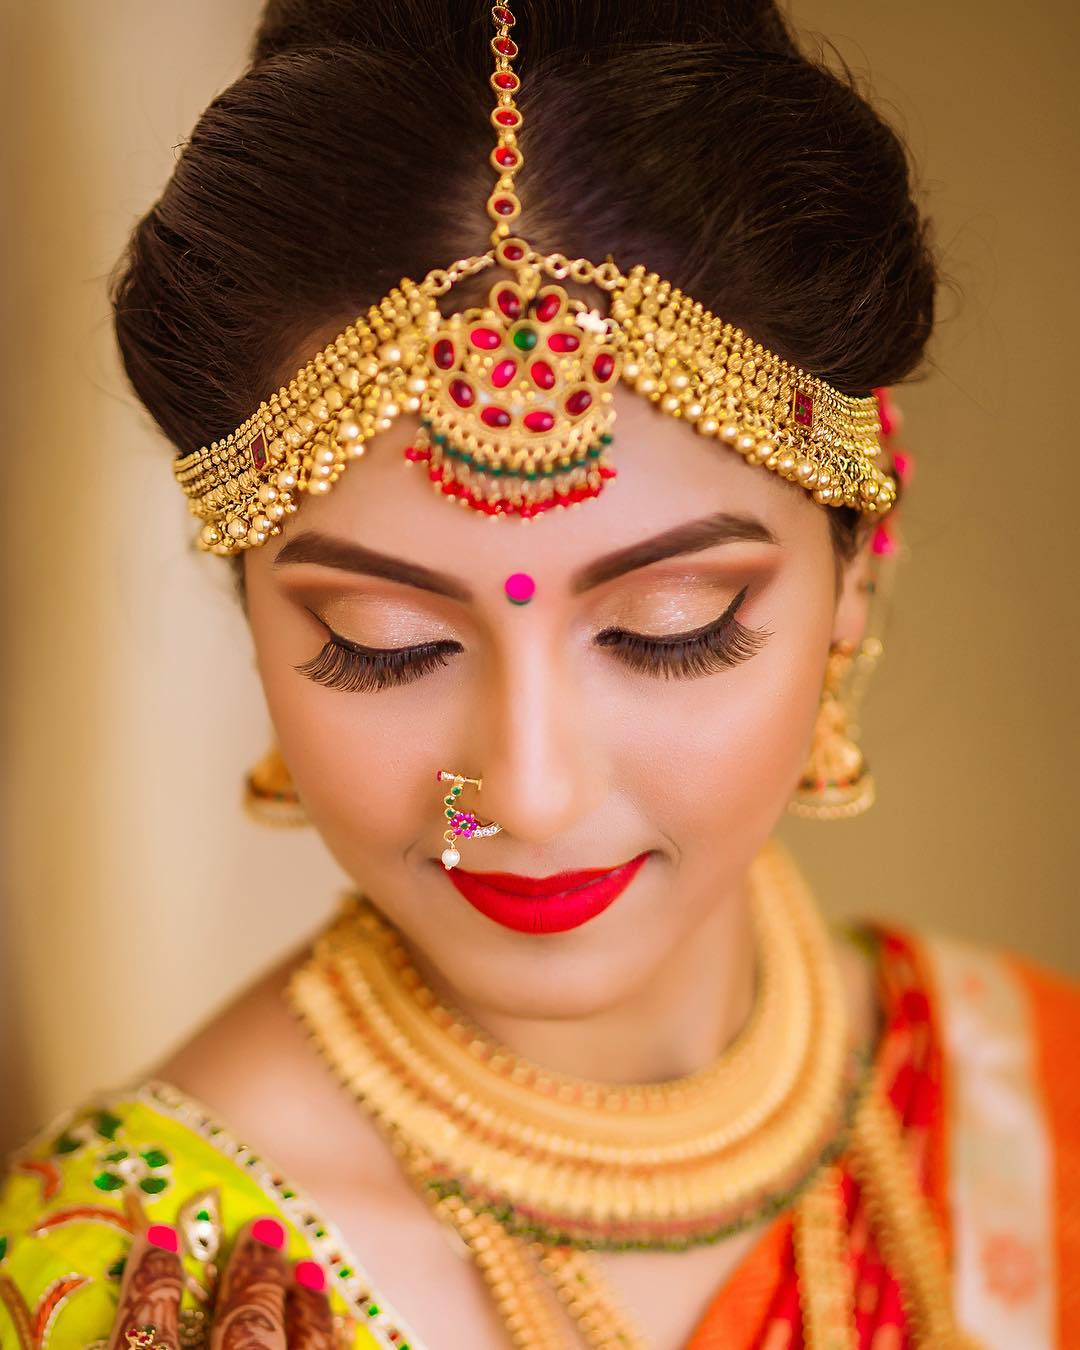 South-Indian-Wedding-Jewellery(featured image)